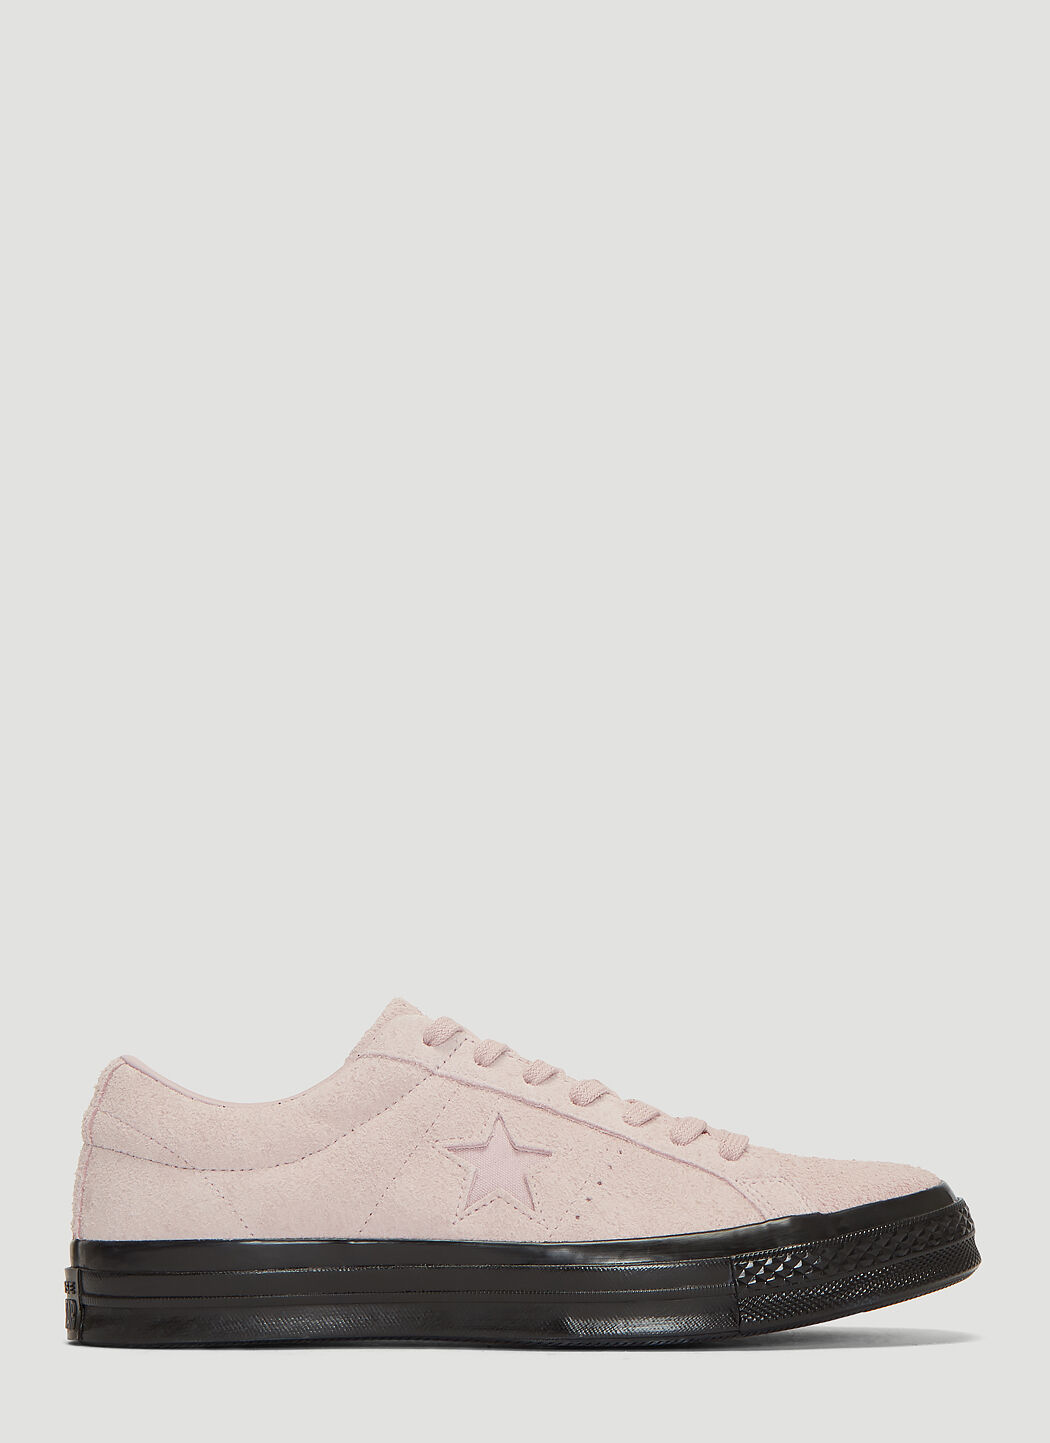 Converse One Star Suede Sneakers in Rose | LN CC